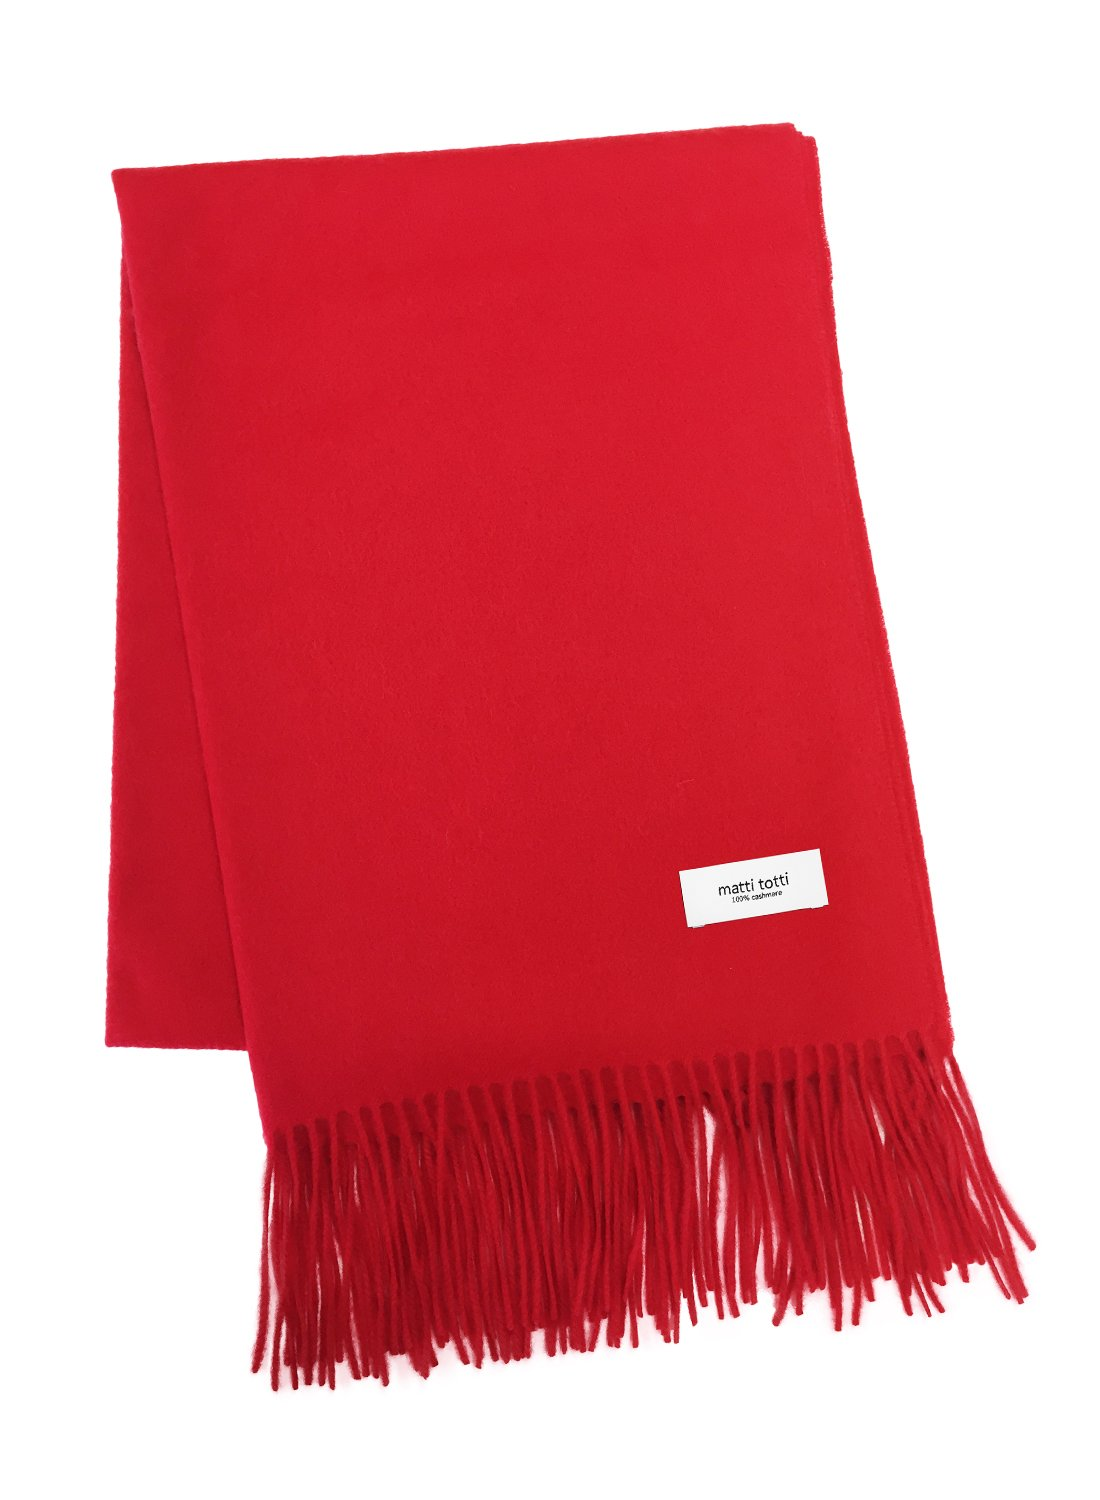 Red 100% Cashmere Shawl Stole Women Gift Scarves Wrap Blanket A1014B1-10